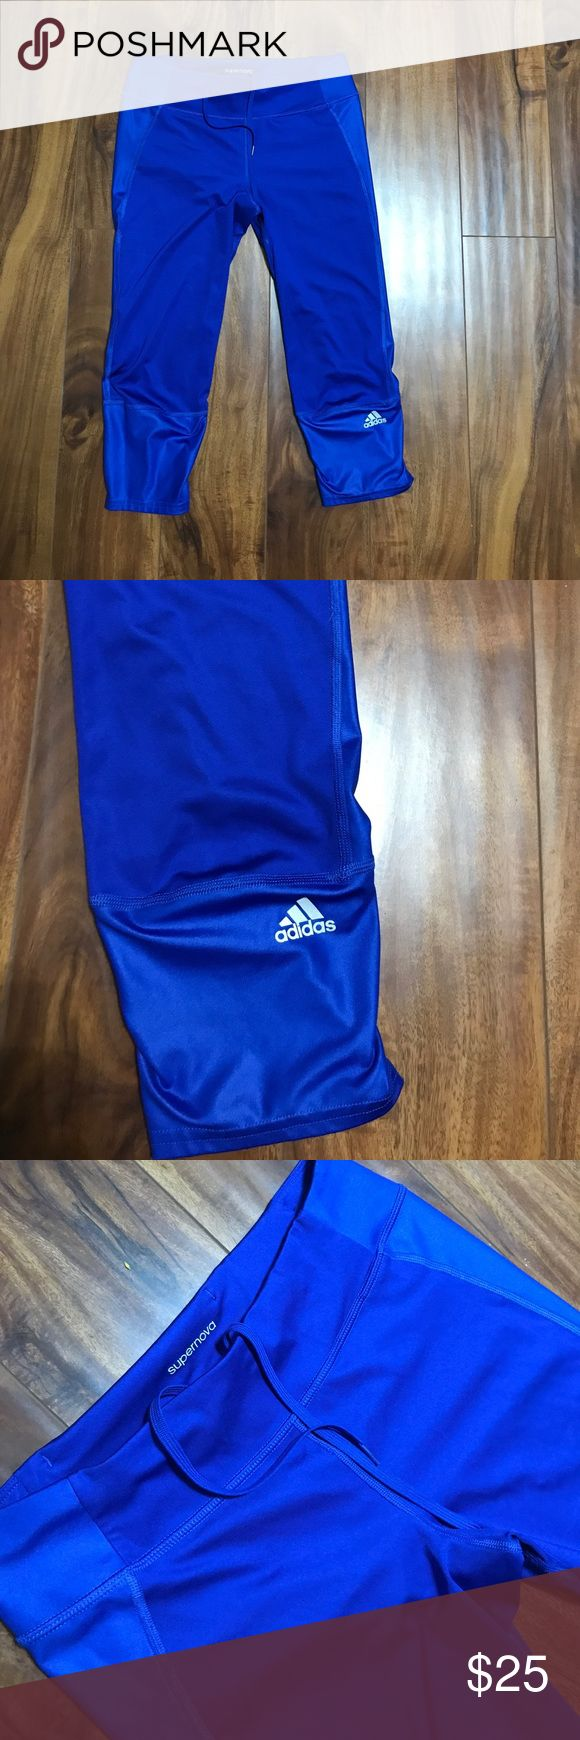 Adidas supernova leggings Awesome leggings! Royal blue color. Soft dri fit material.  Cropped. Wide waistband. Just awesome. Too big for me. adidas Pants Leggings